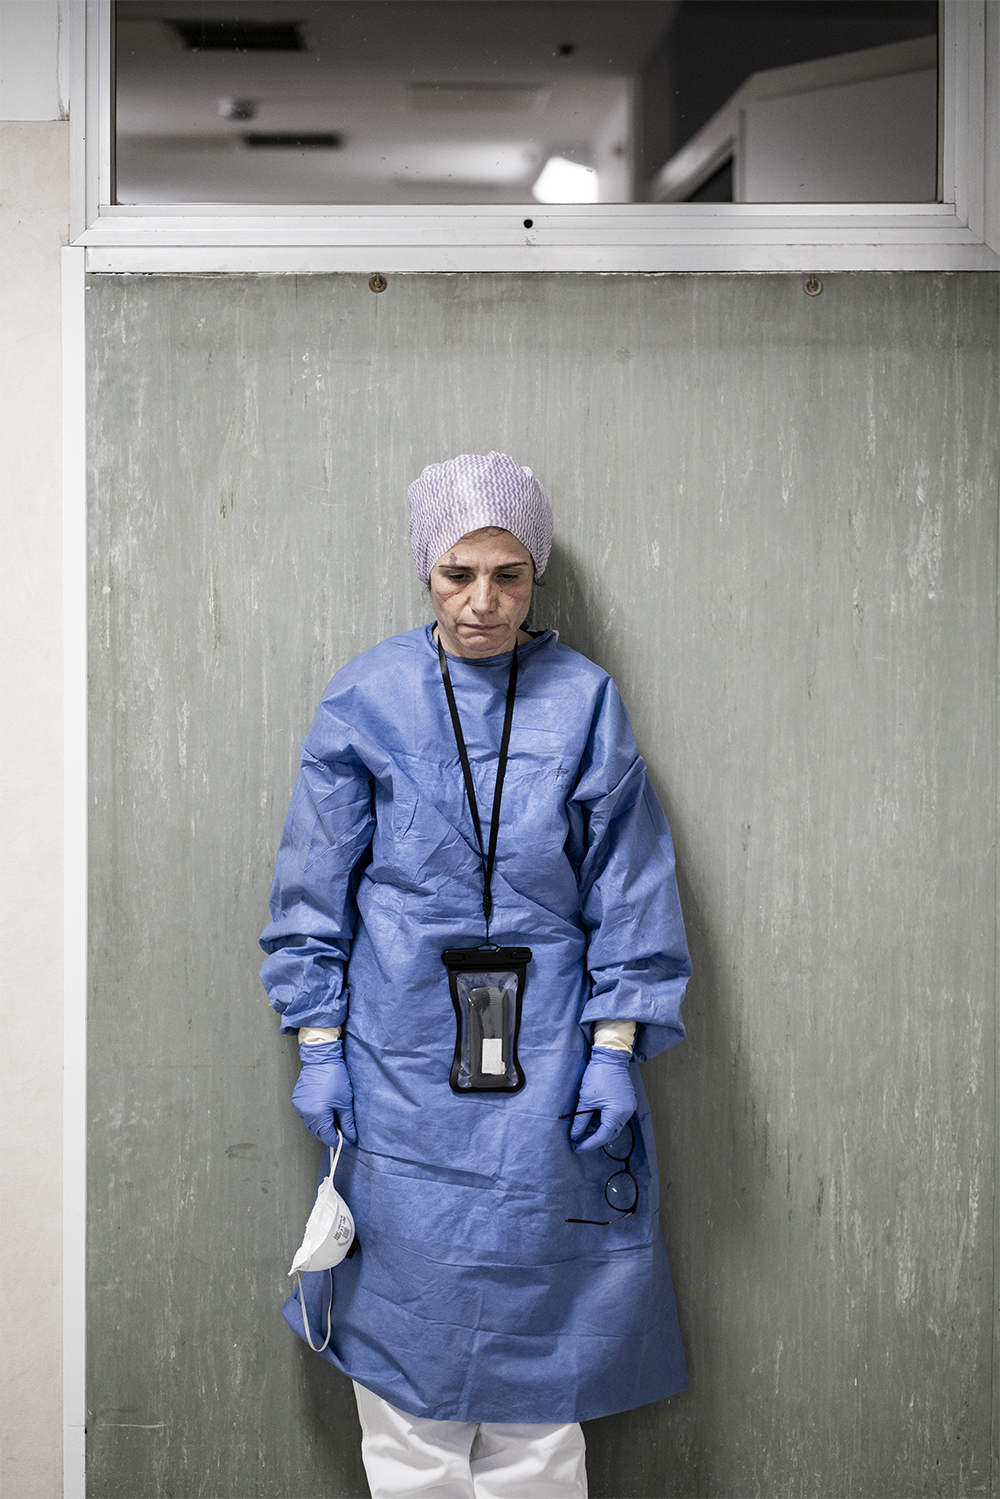 Margherita Lambertini, a first-aid surgeon doctor in Pesaro, Italy, at the end of a long shift. Italian photographer and journalist Alberto Giuliani took a series of photographs in the hospital.